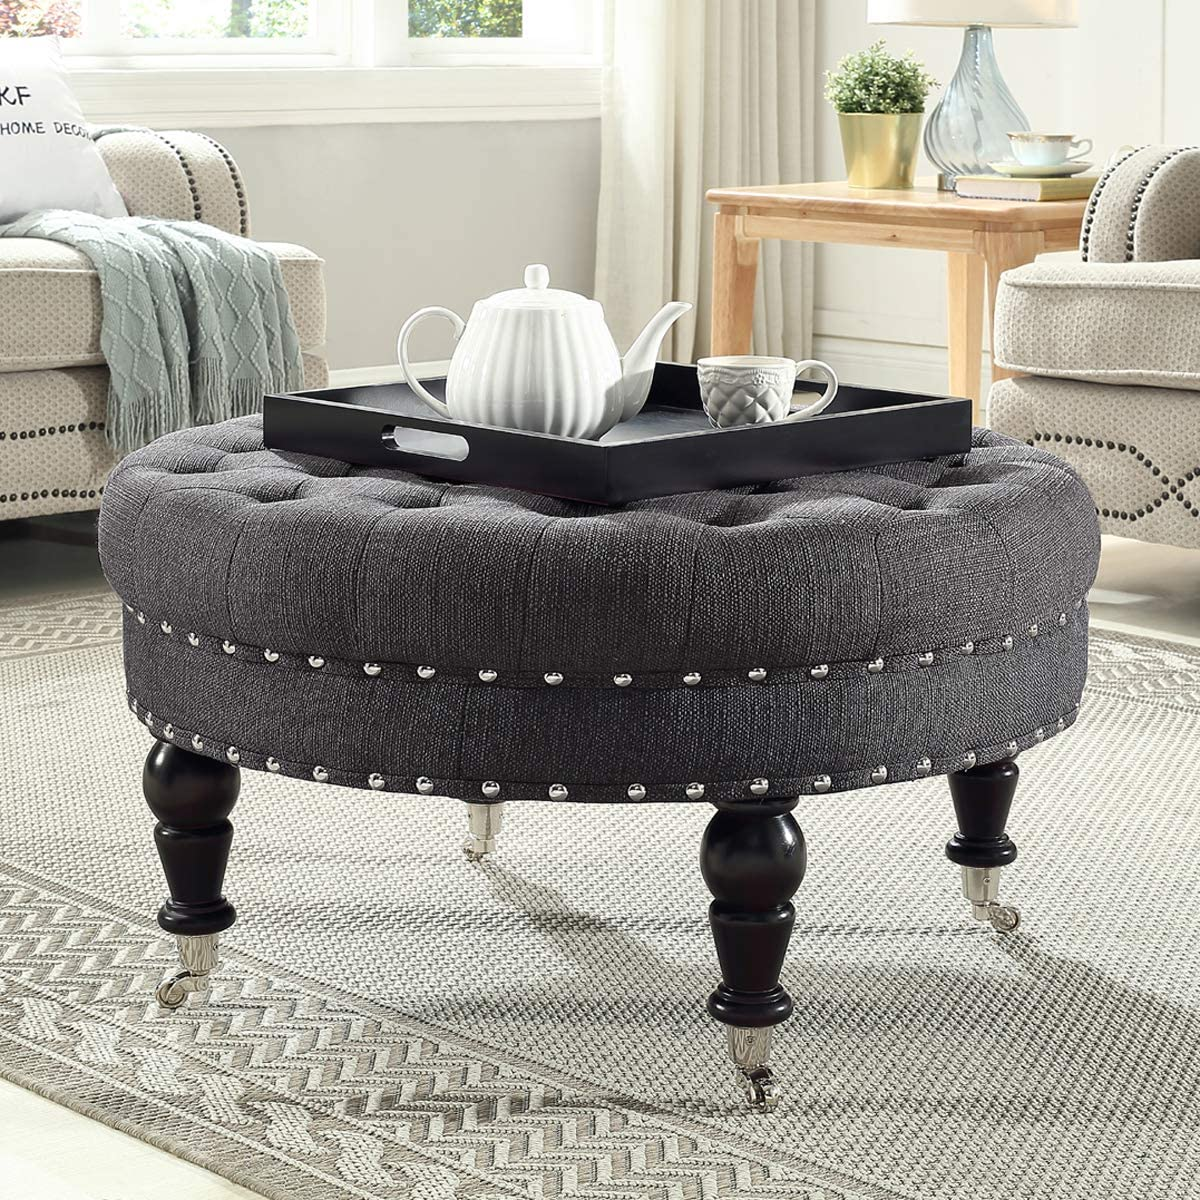 - Amazon.com: 24KF Large Round Upholstered Tufted Button Linen